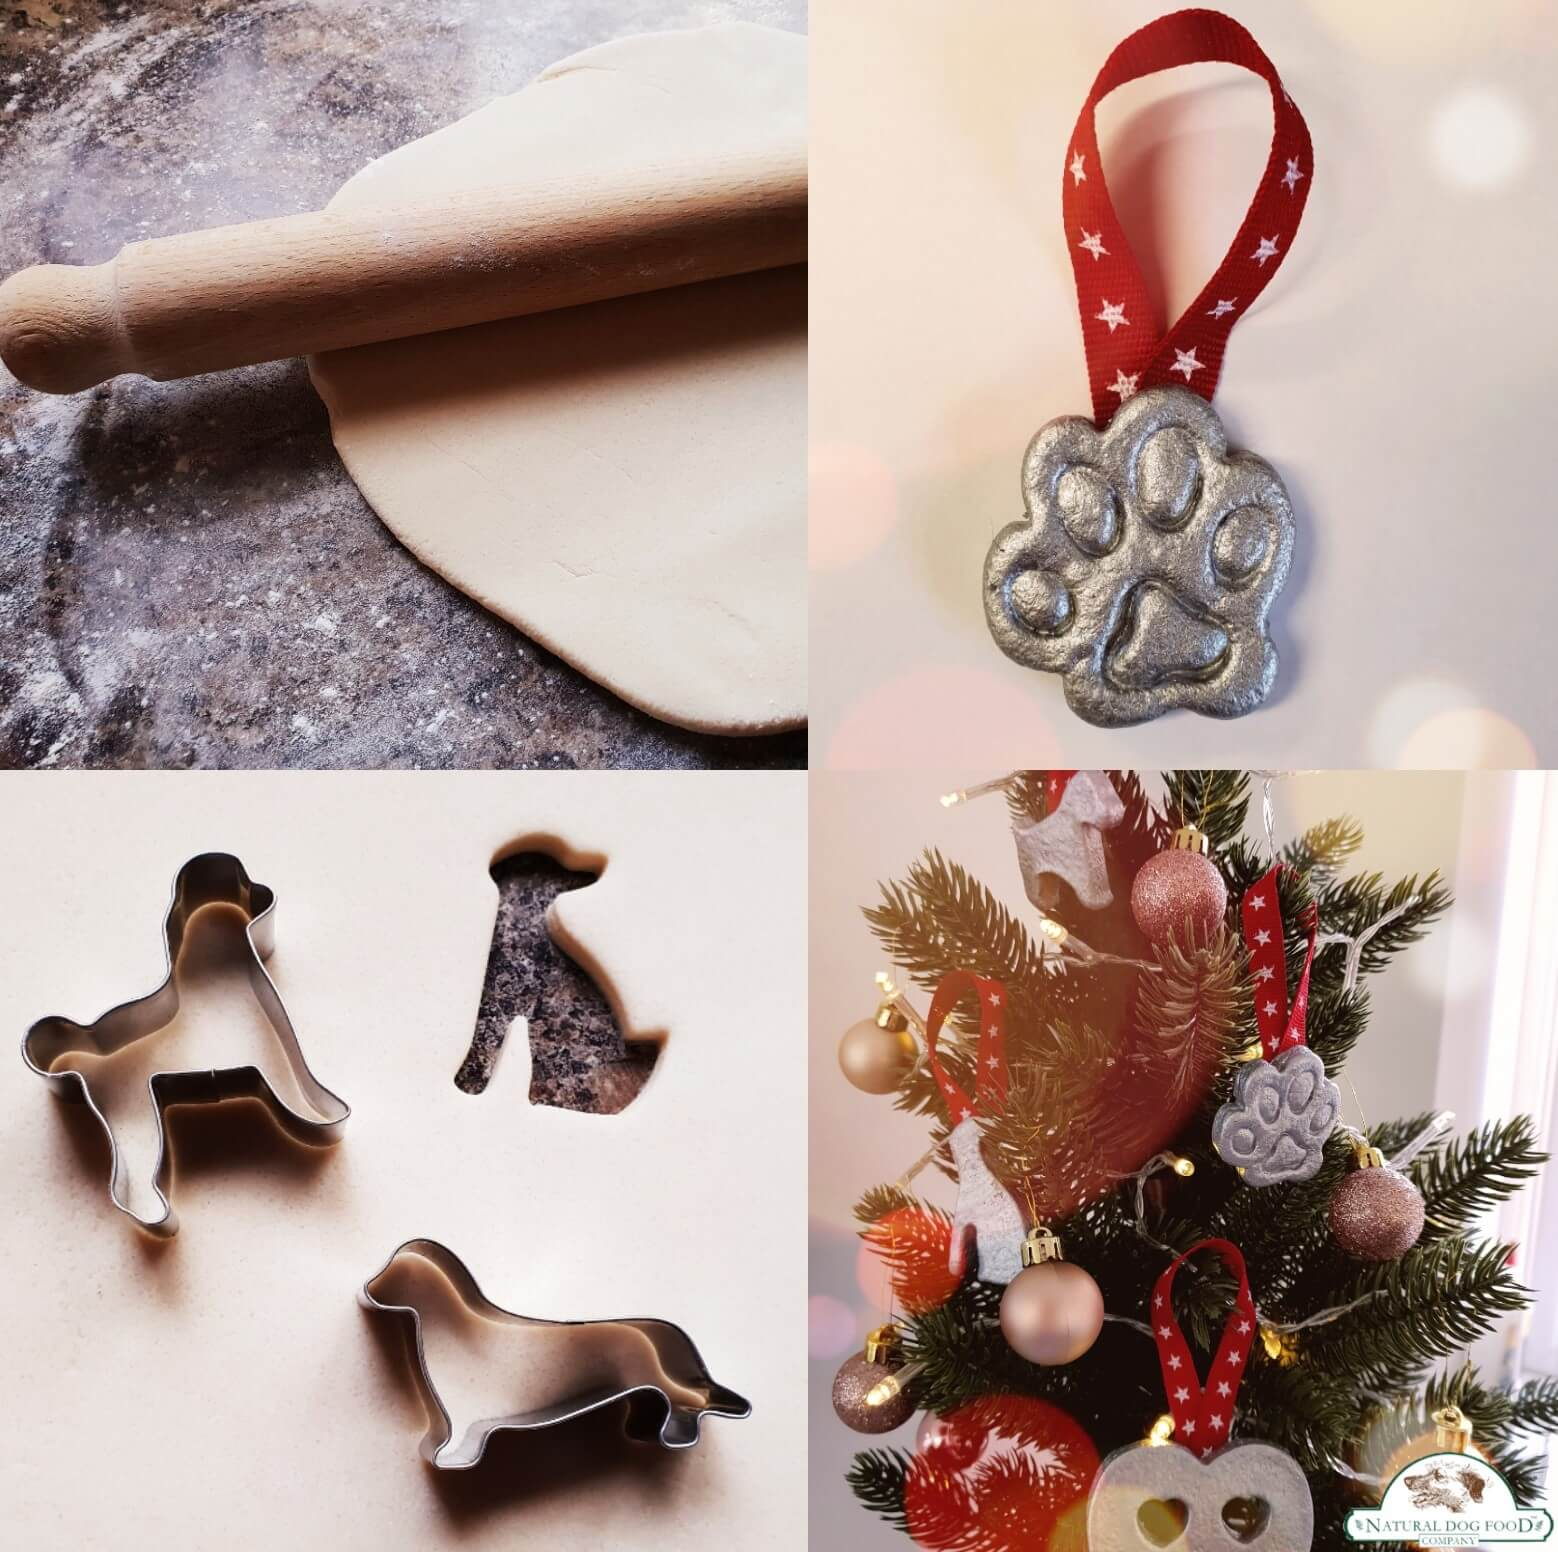 Make Your own Christmas Decoration!